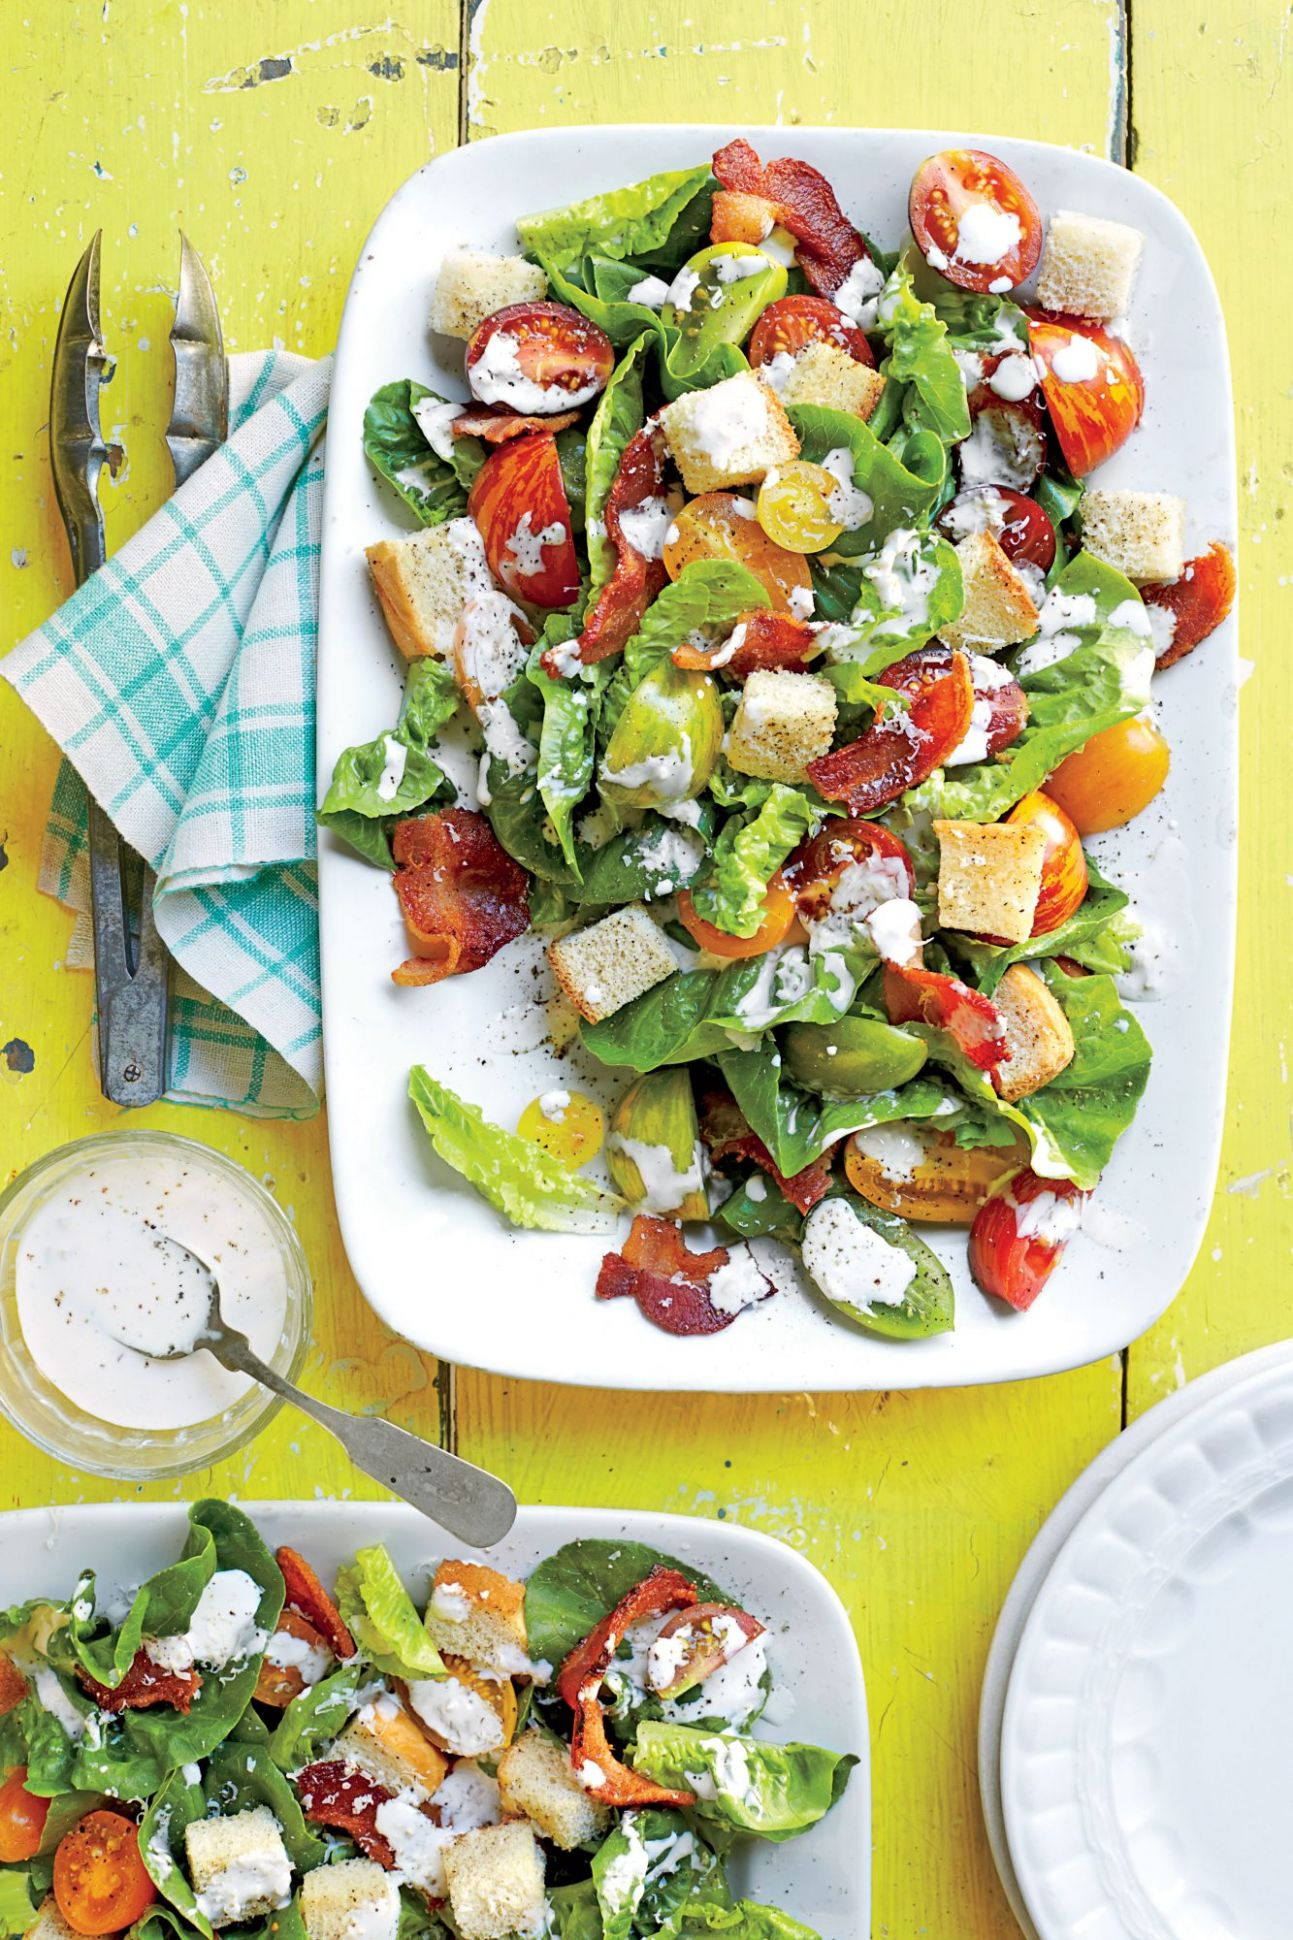 Quick & Delicious Summer Salad Recipes | Southern Living - Recipes For Quick Summer Salads